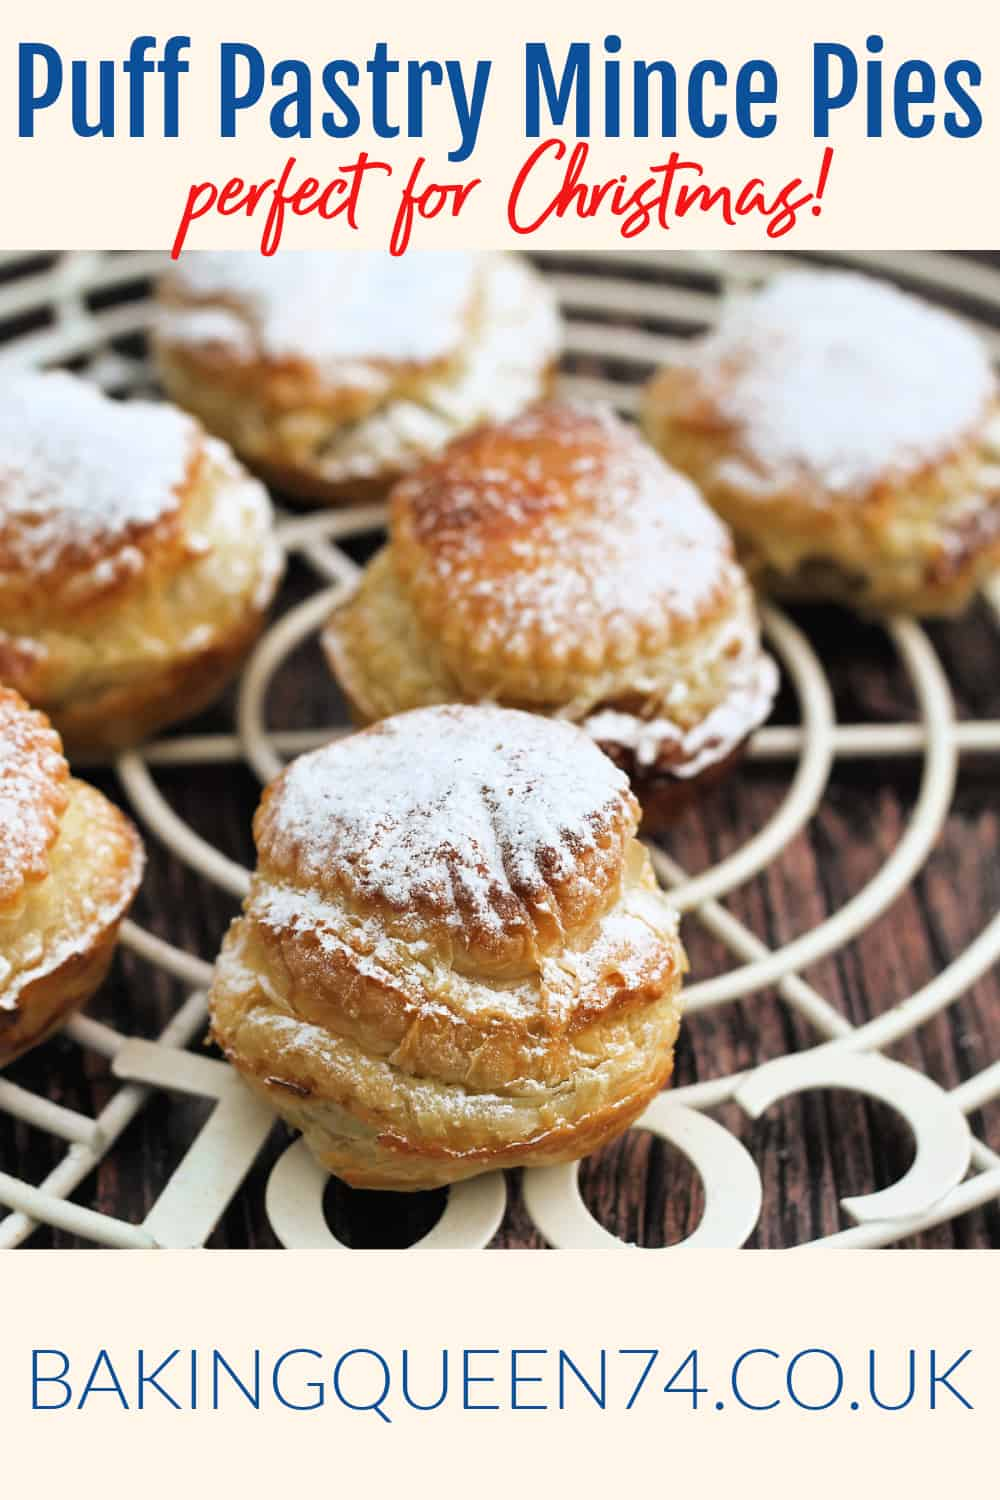 Puff pastry mince pies image and text collage for pinning.